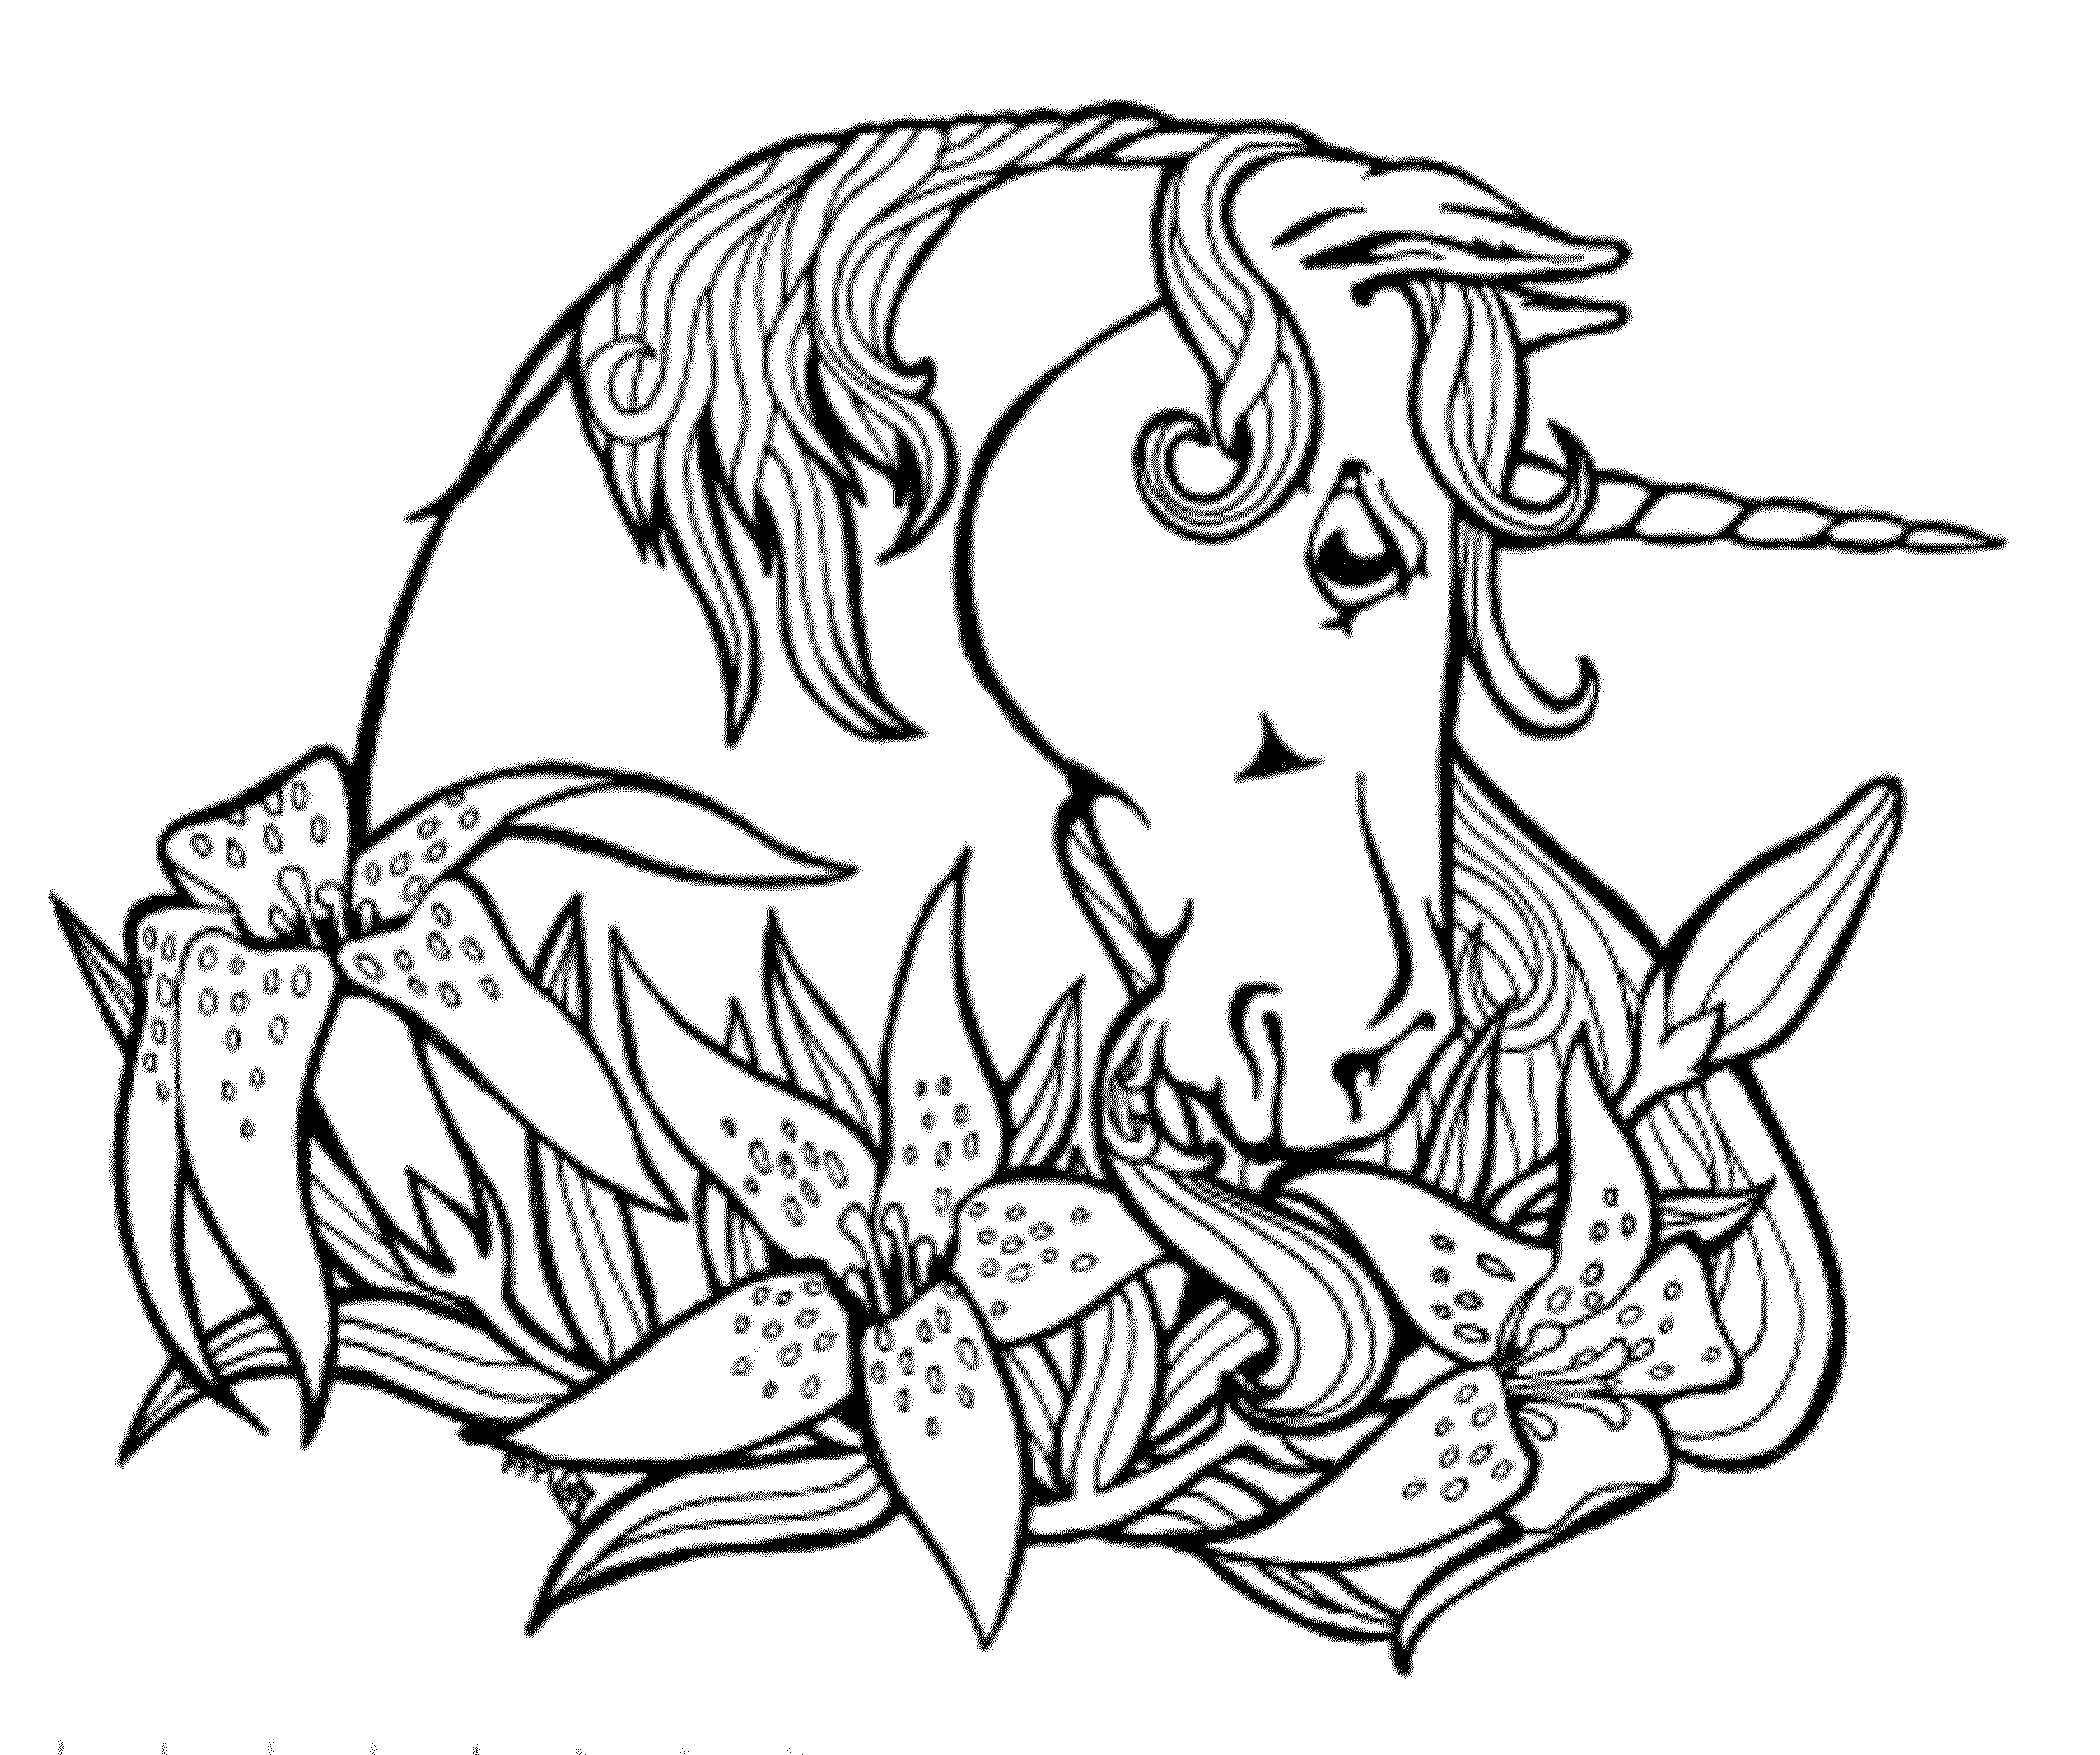 free coloring sheets unicorn unicorn coloring pages free learning printable free coloring sheets unicorn